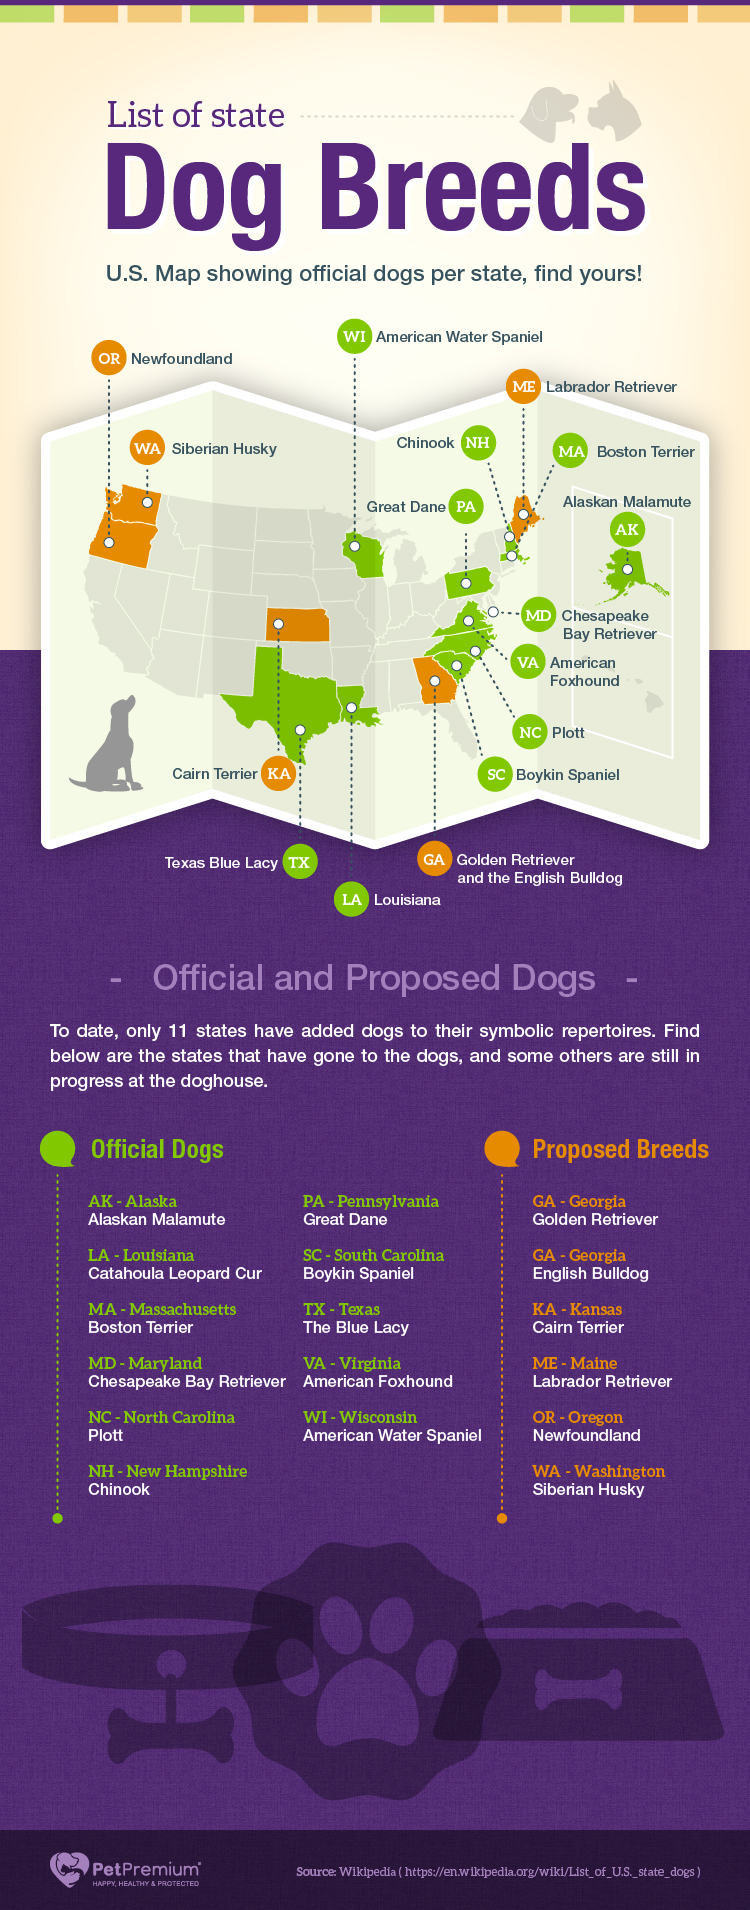 List with official dog breeds per state  -  U.S. Map - PetPremium's Infographic